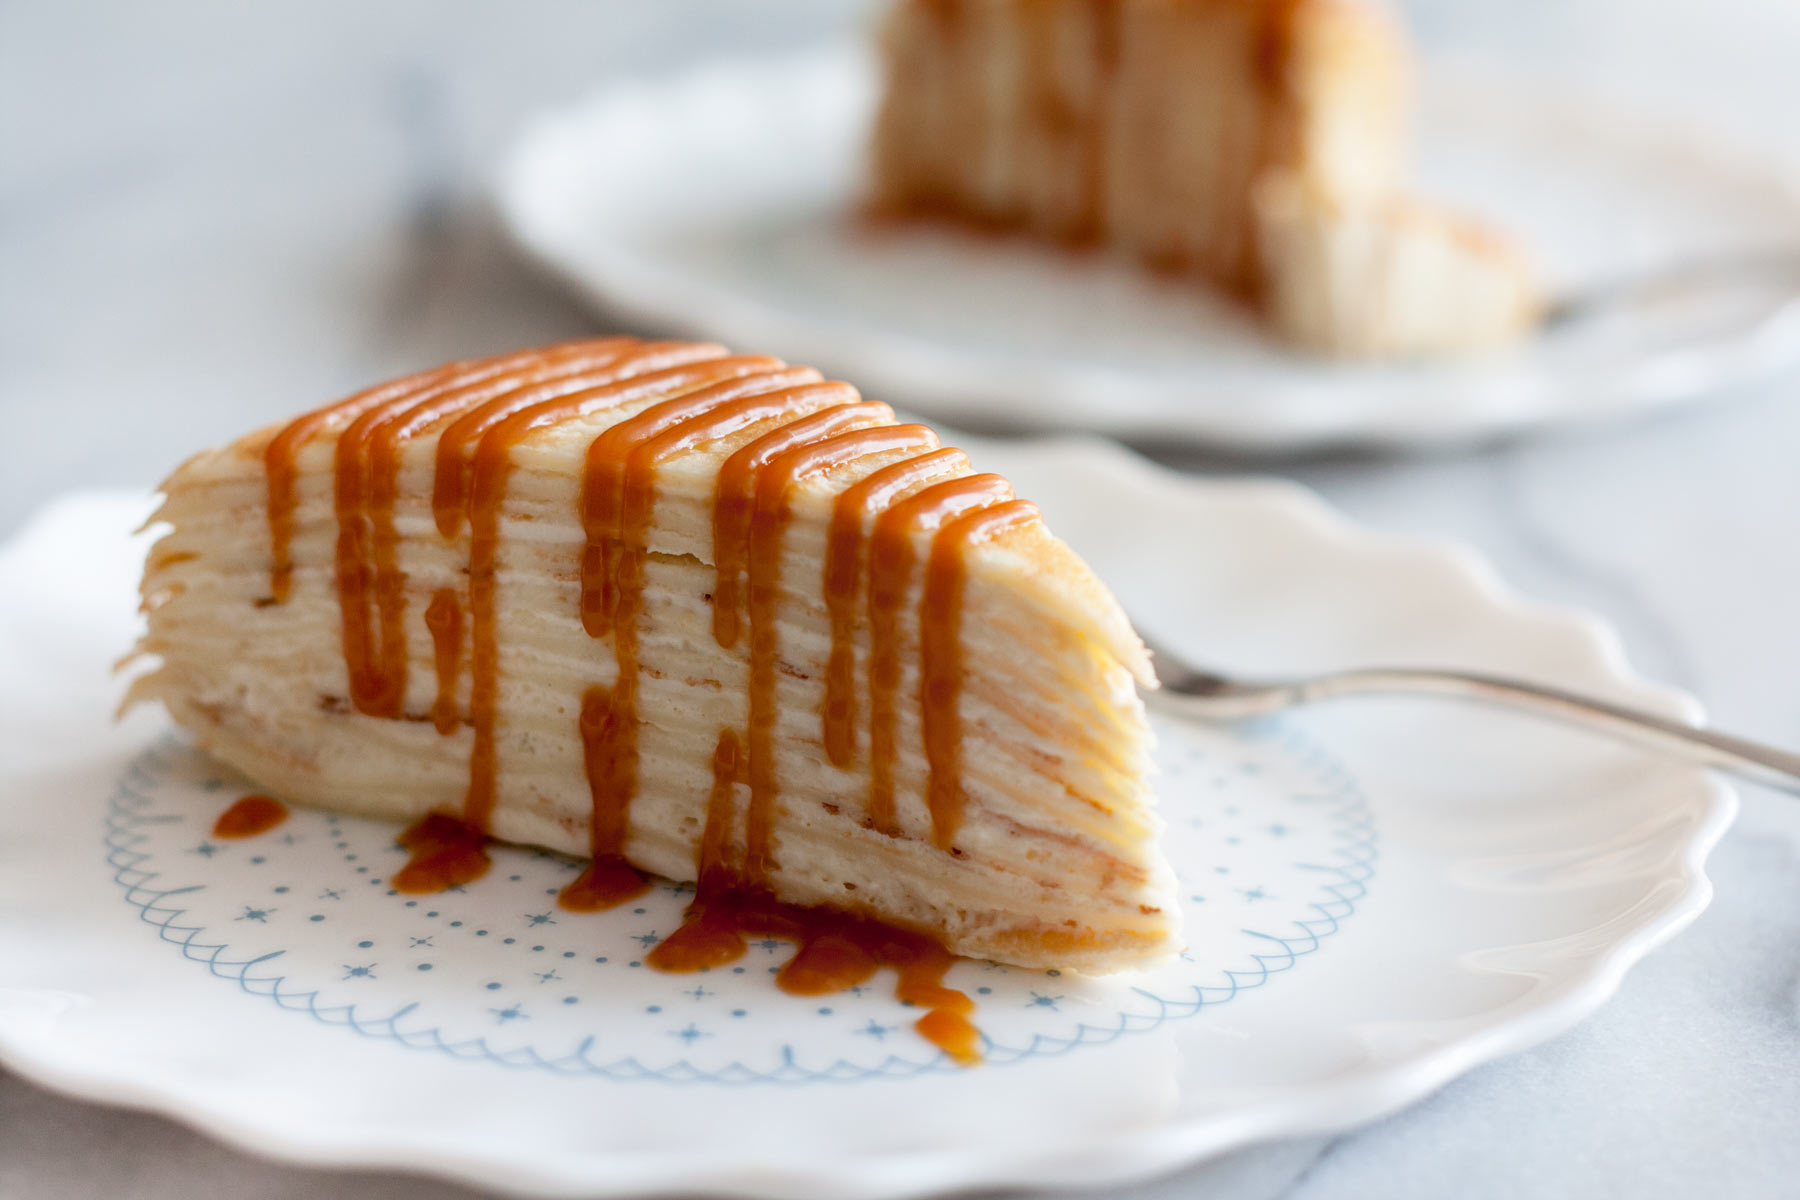 Decadent, classic French cake consisting of 12 layers of paper thin crepes separated with pastry cream, plus variations on how you can serve it in different ways just by adding 1 or 2 ingredients!